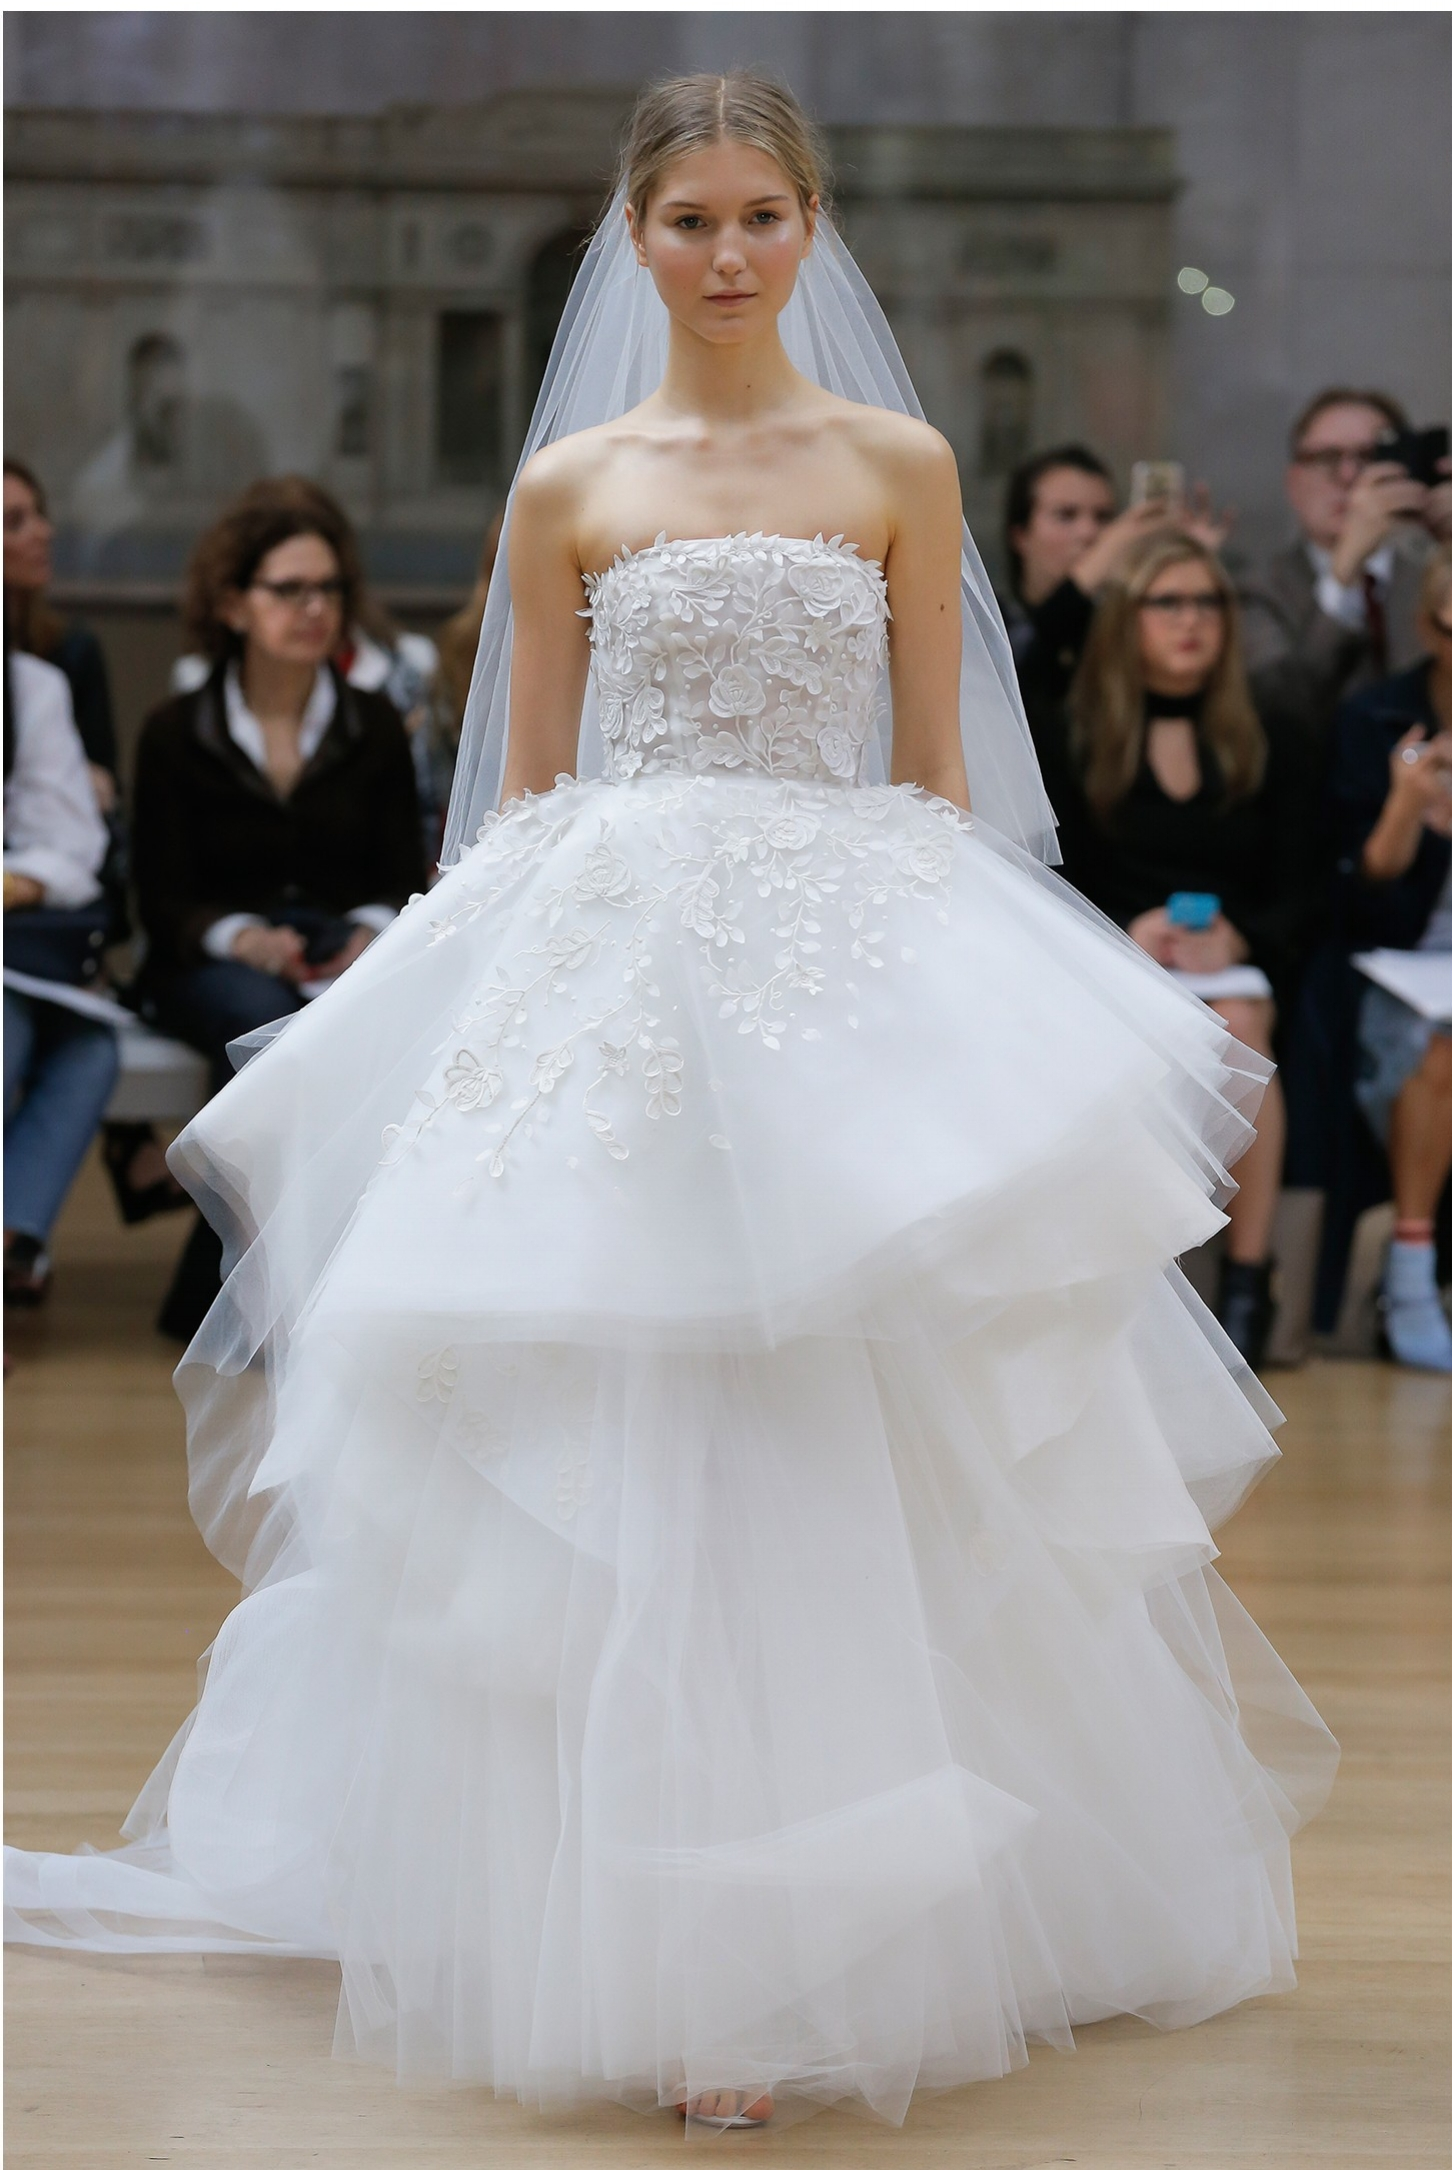 Wedding dress by Oscar de la Renta